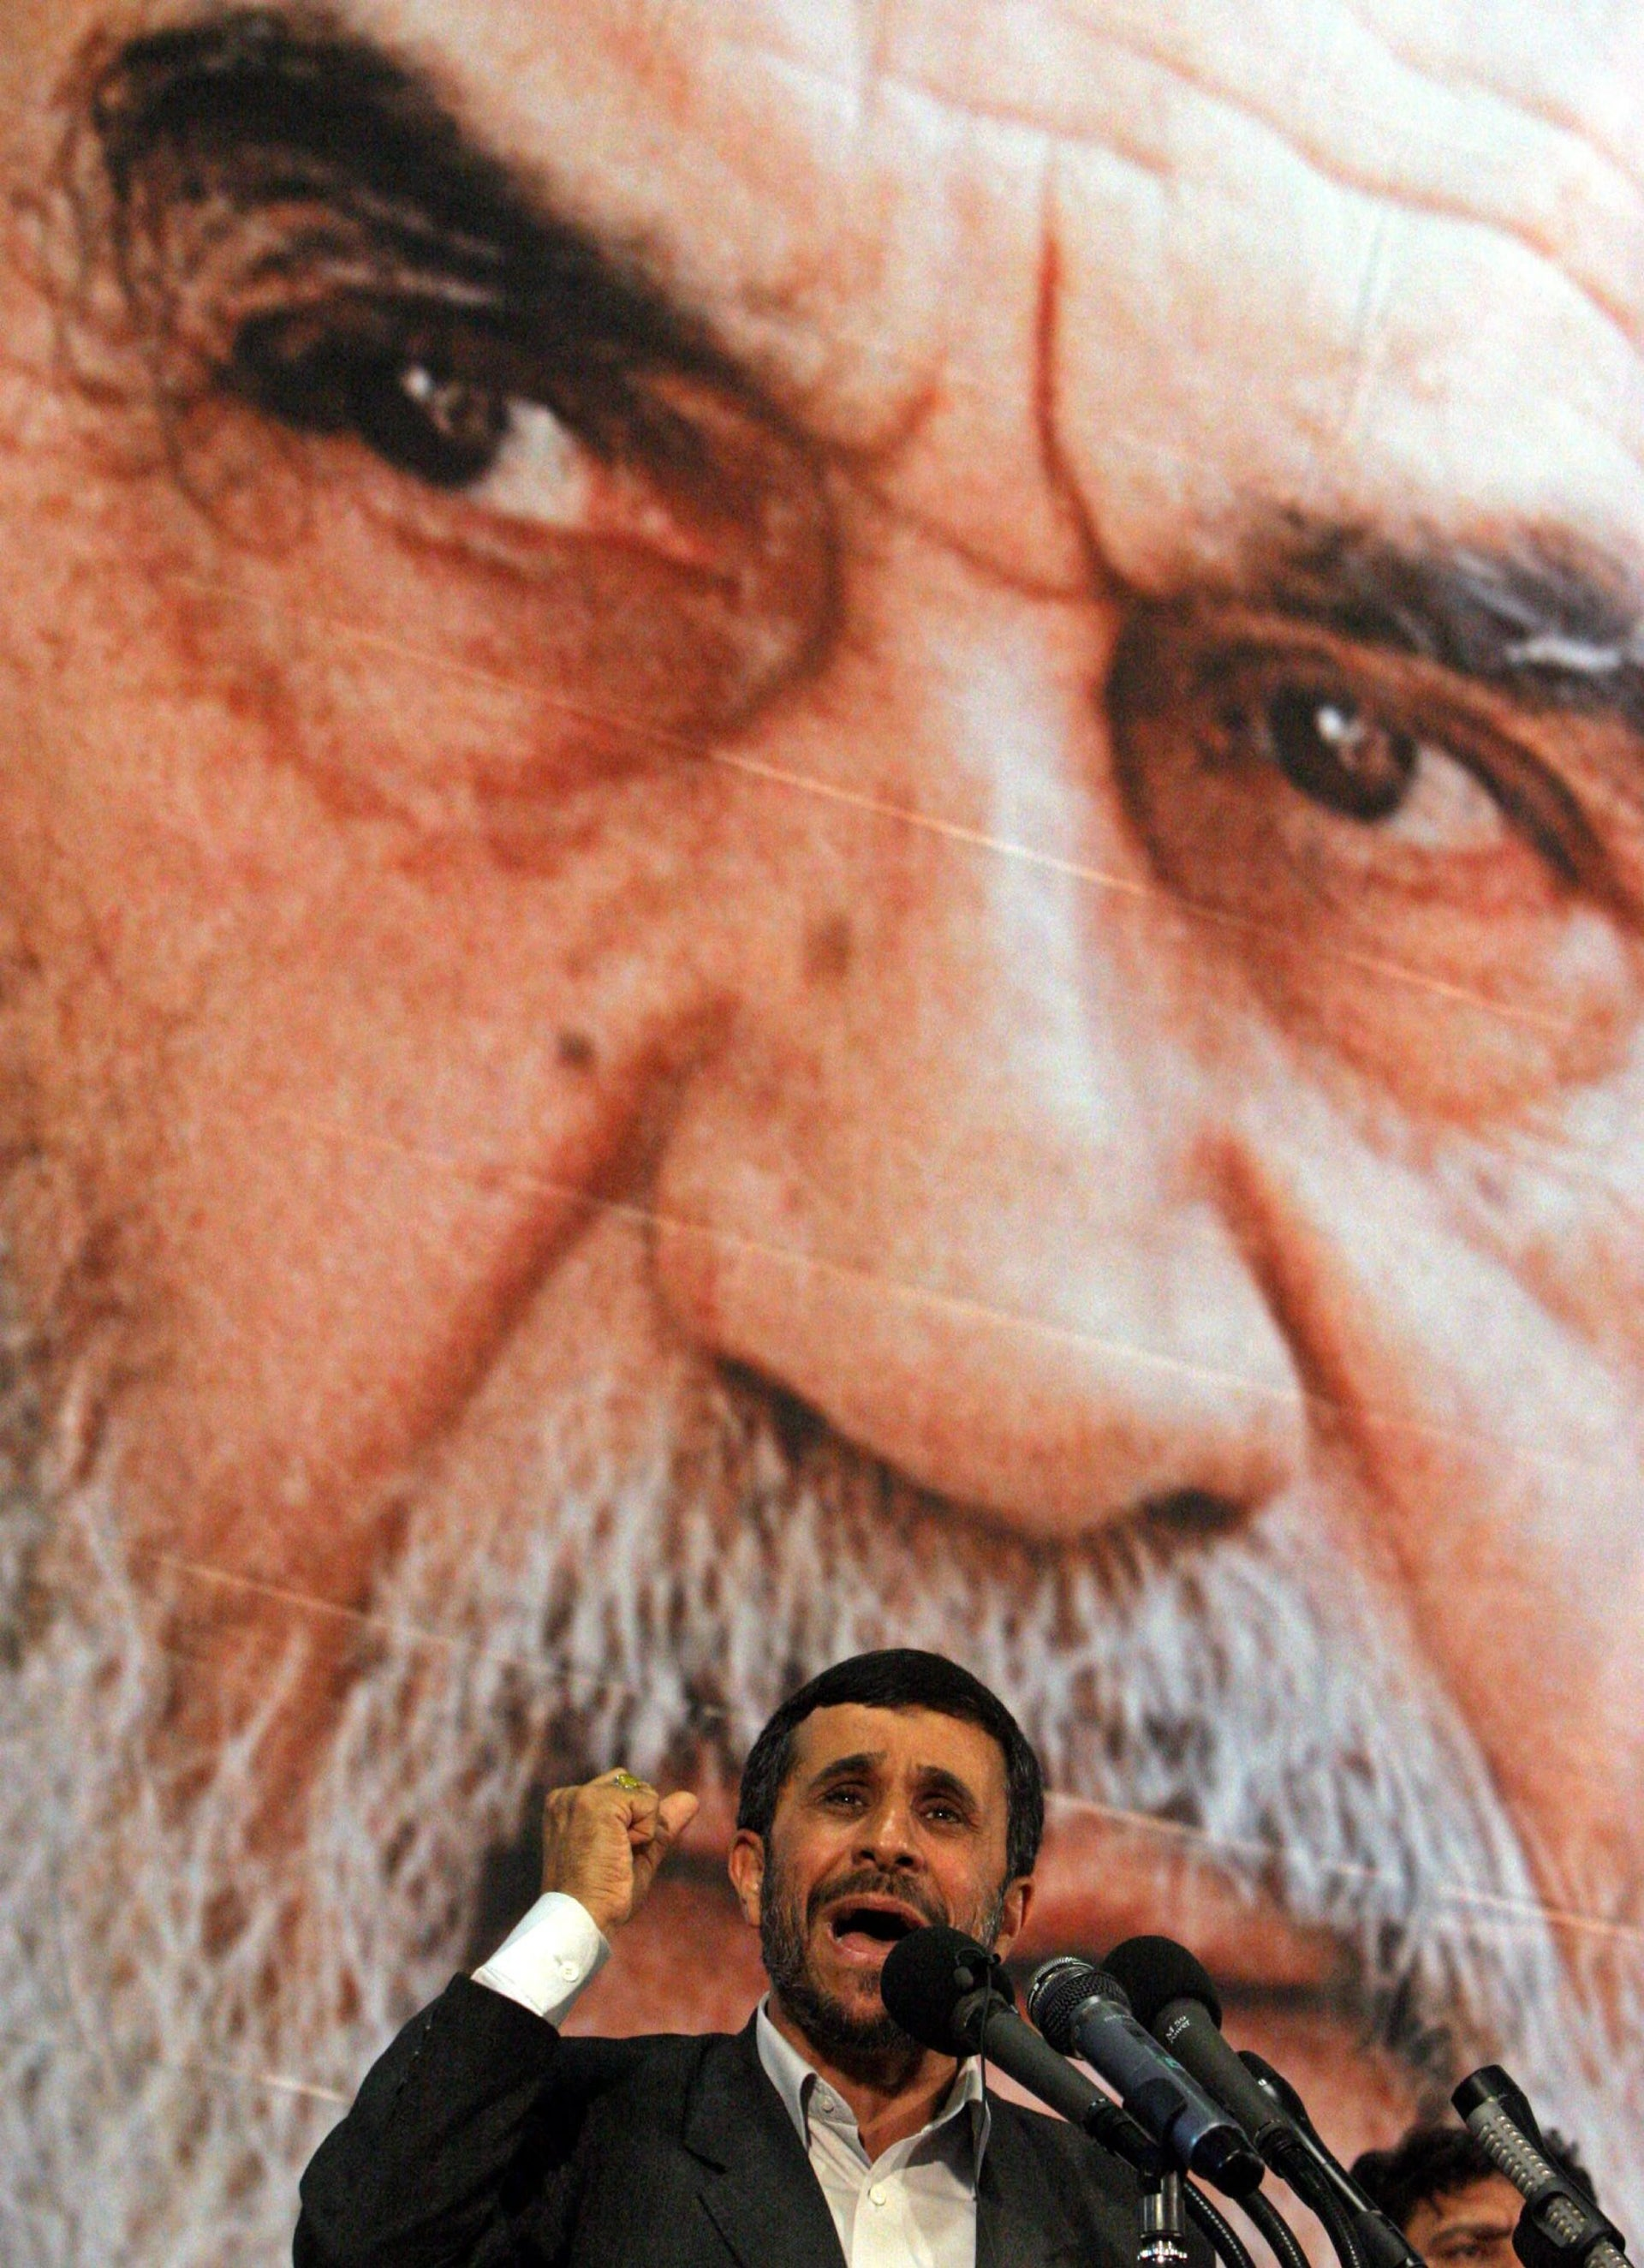 Iranian President Mahmoud Ahmadinejad delivering a speech on the 18th anniversary of the death of the late revolutionary founder Ayatollah Khomeini, in Tehran, June 2007.